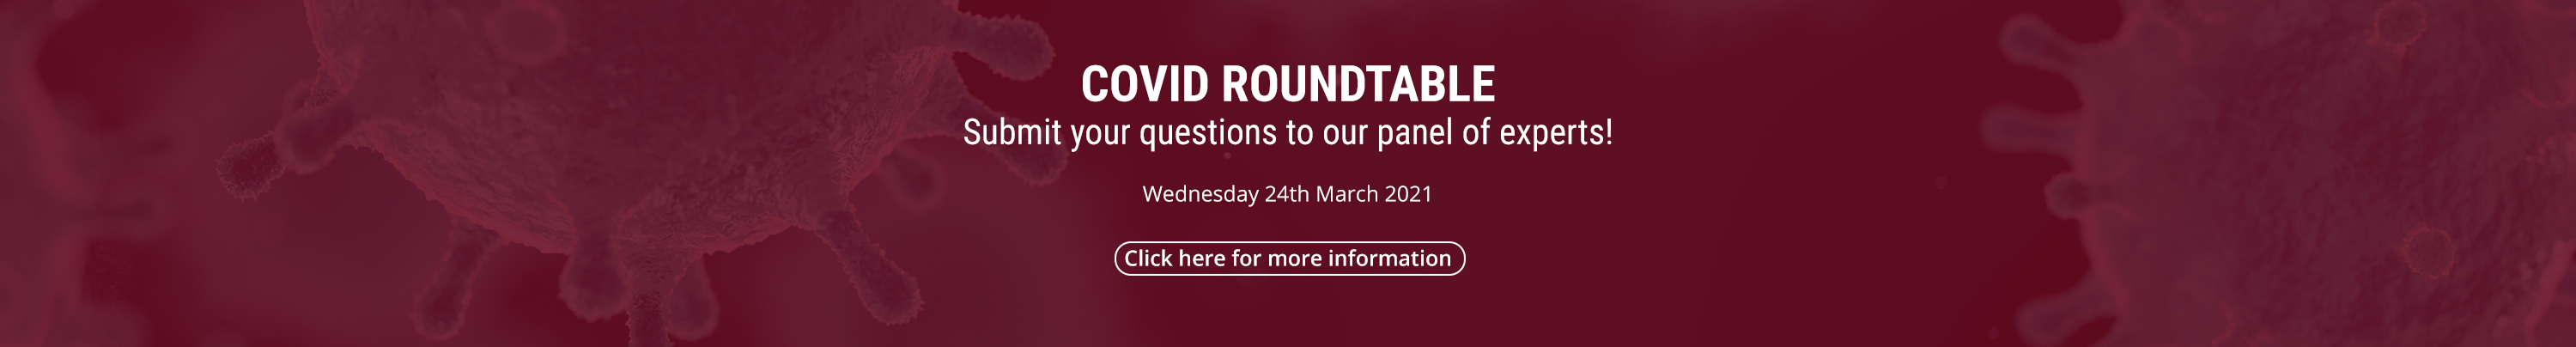 covid_roundtable_banner